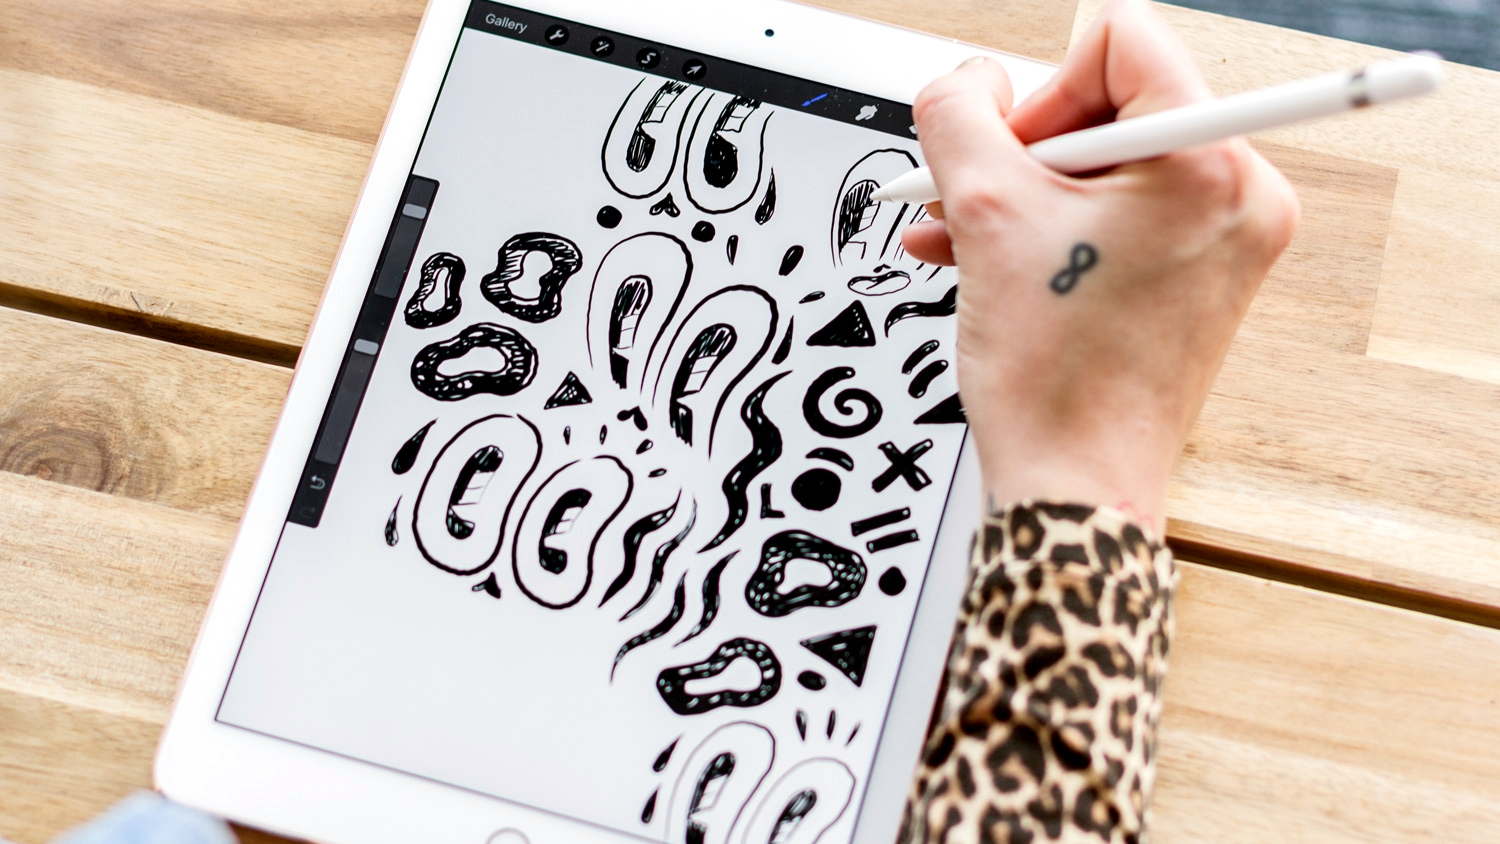 Apple iPad Pro 9 7-inch review – for artists and designers